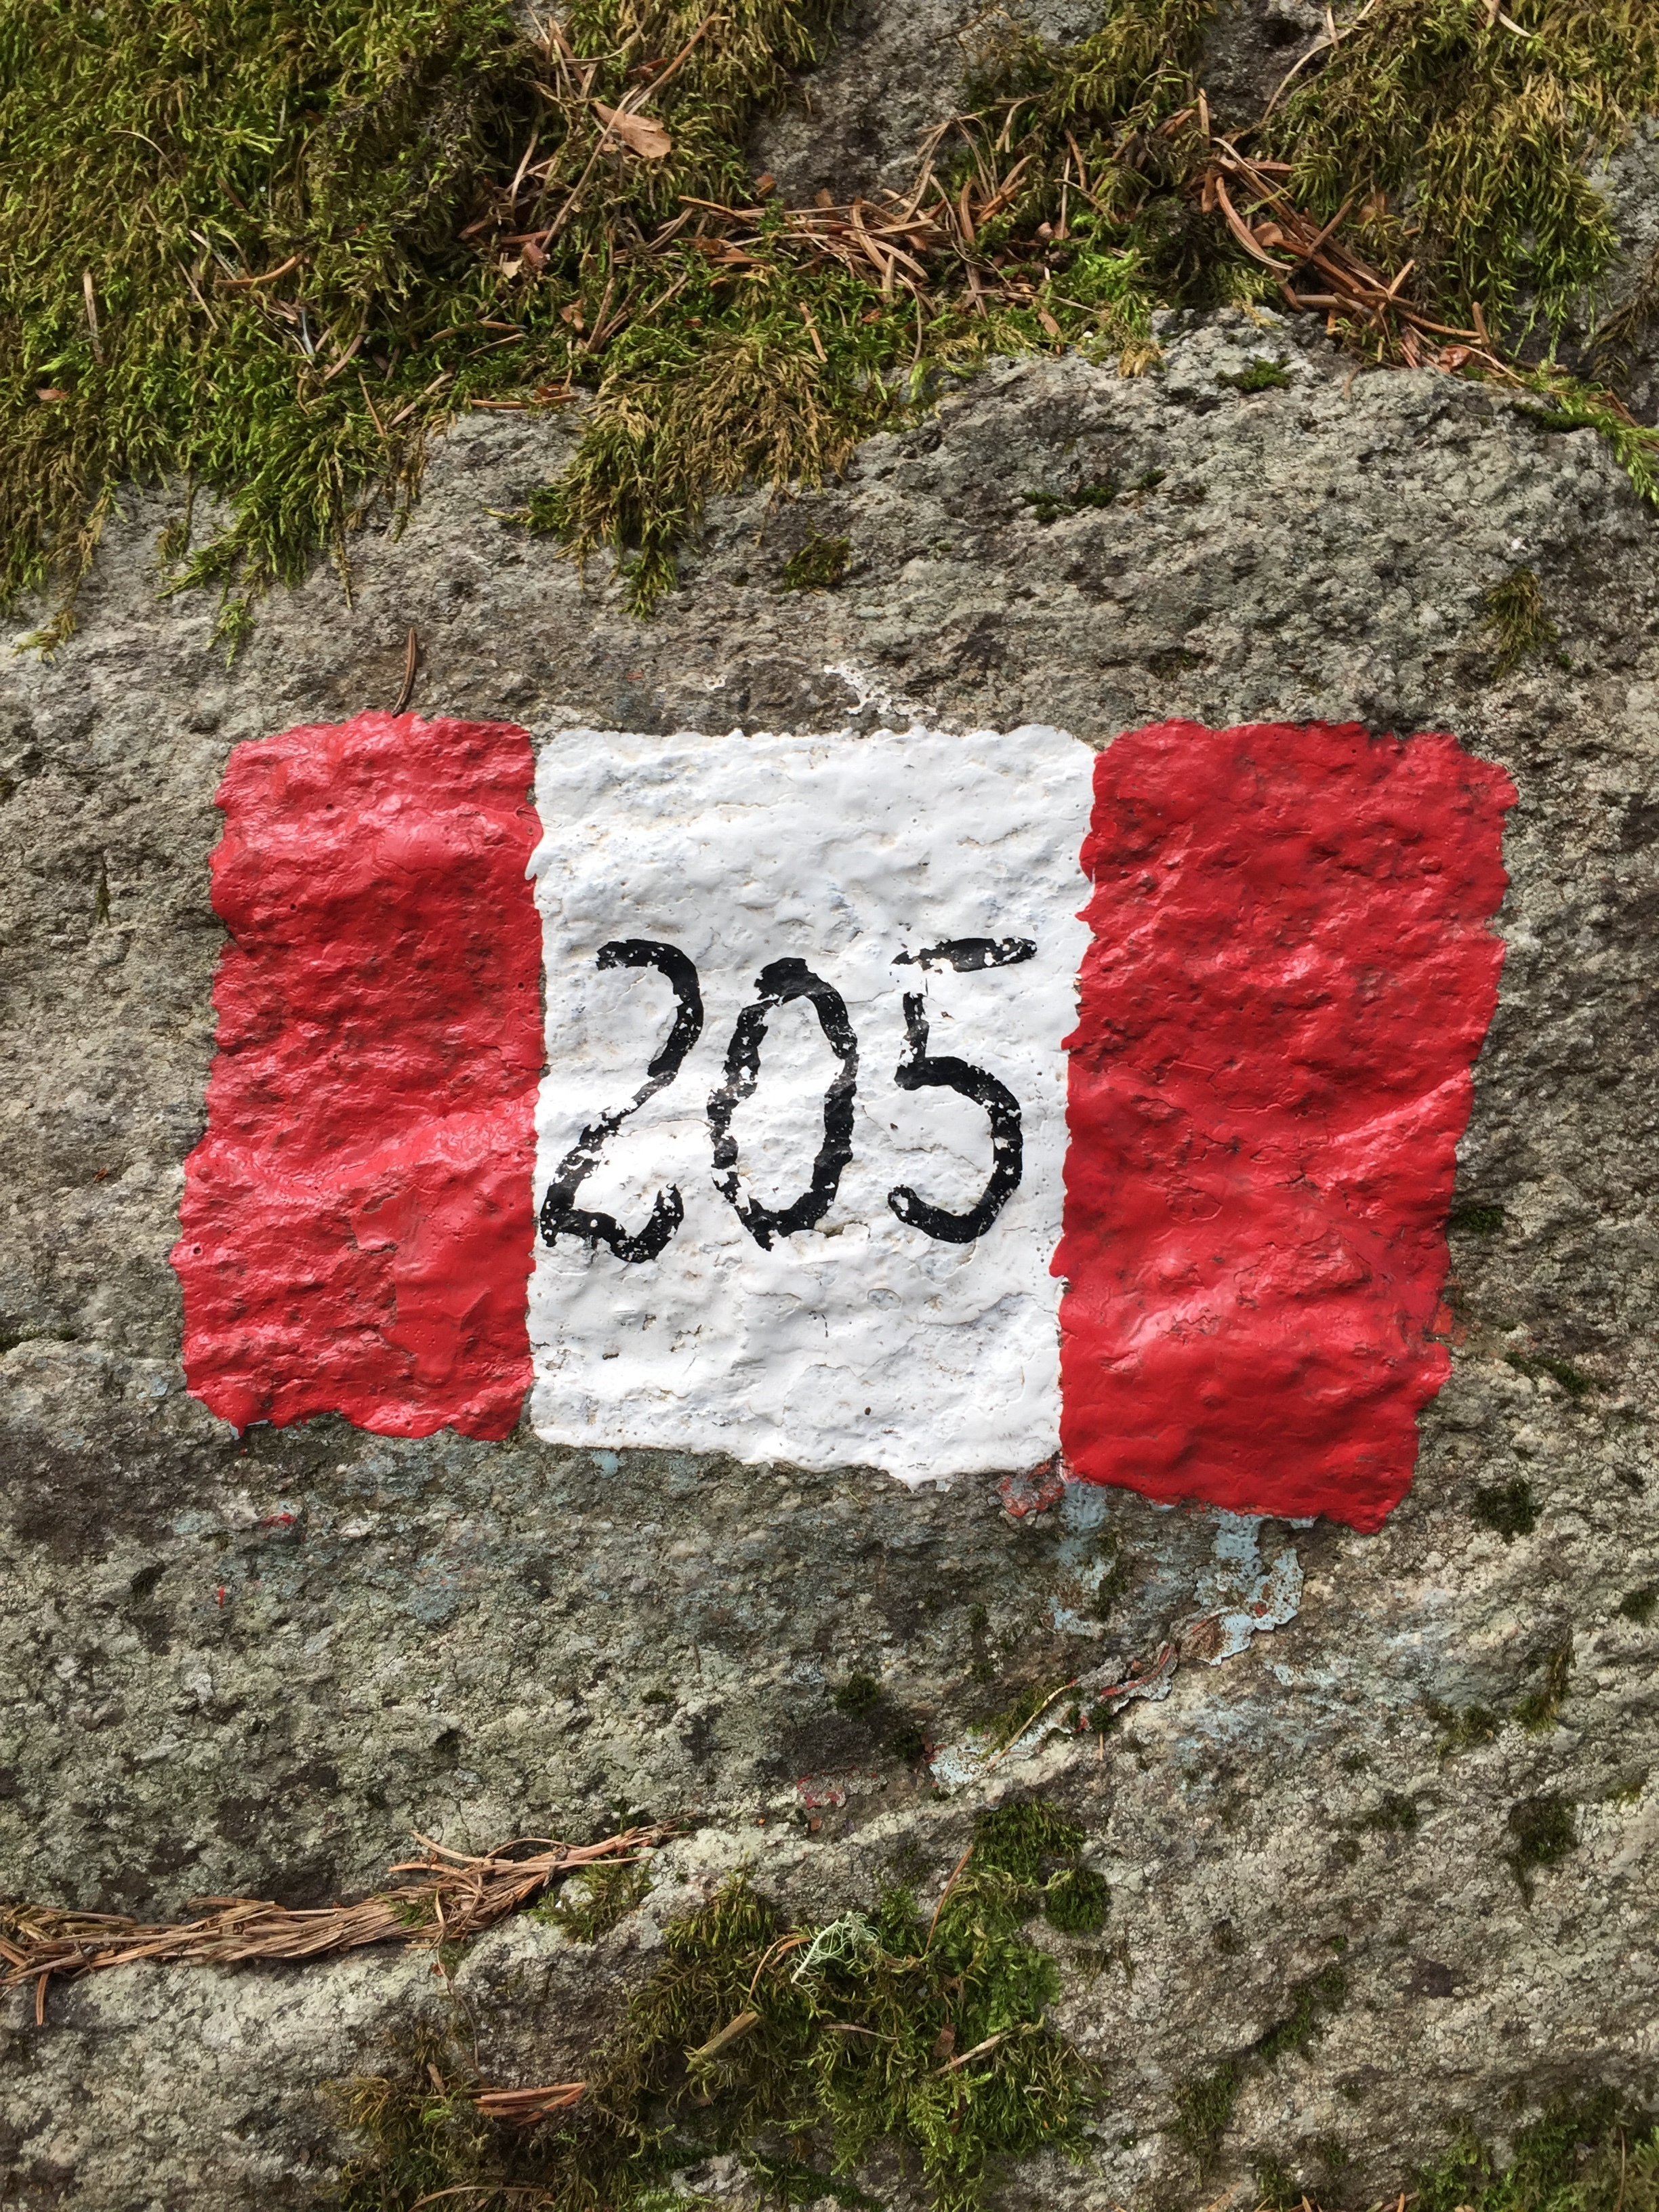 One version of the well marked No. 205 trail from Vermiglio, Italy